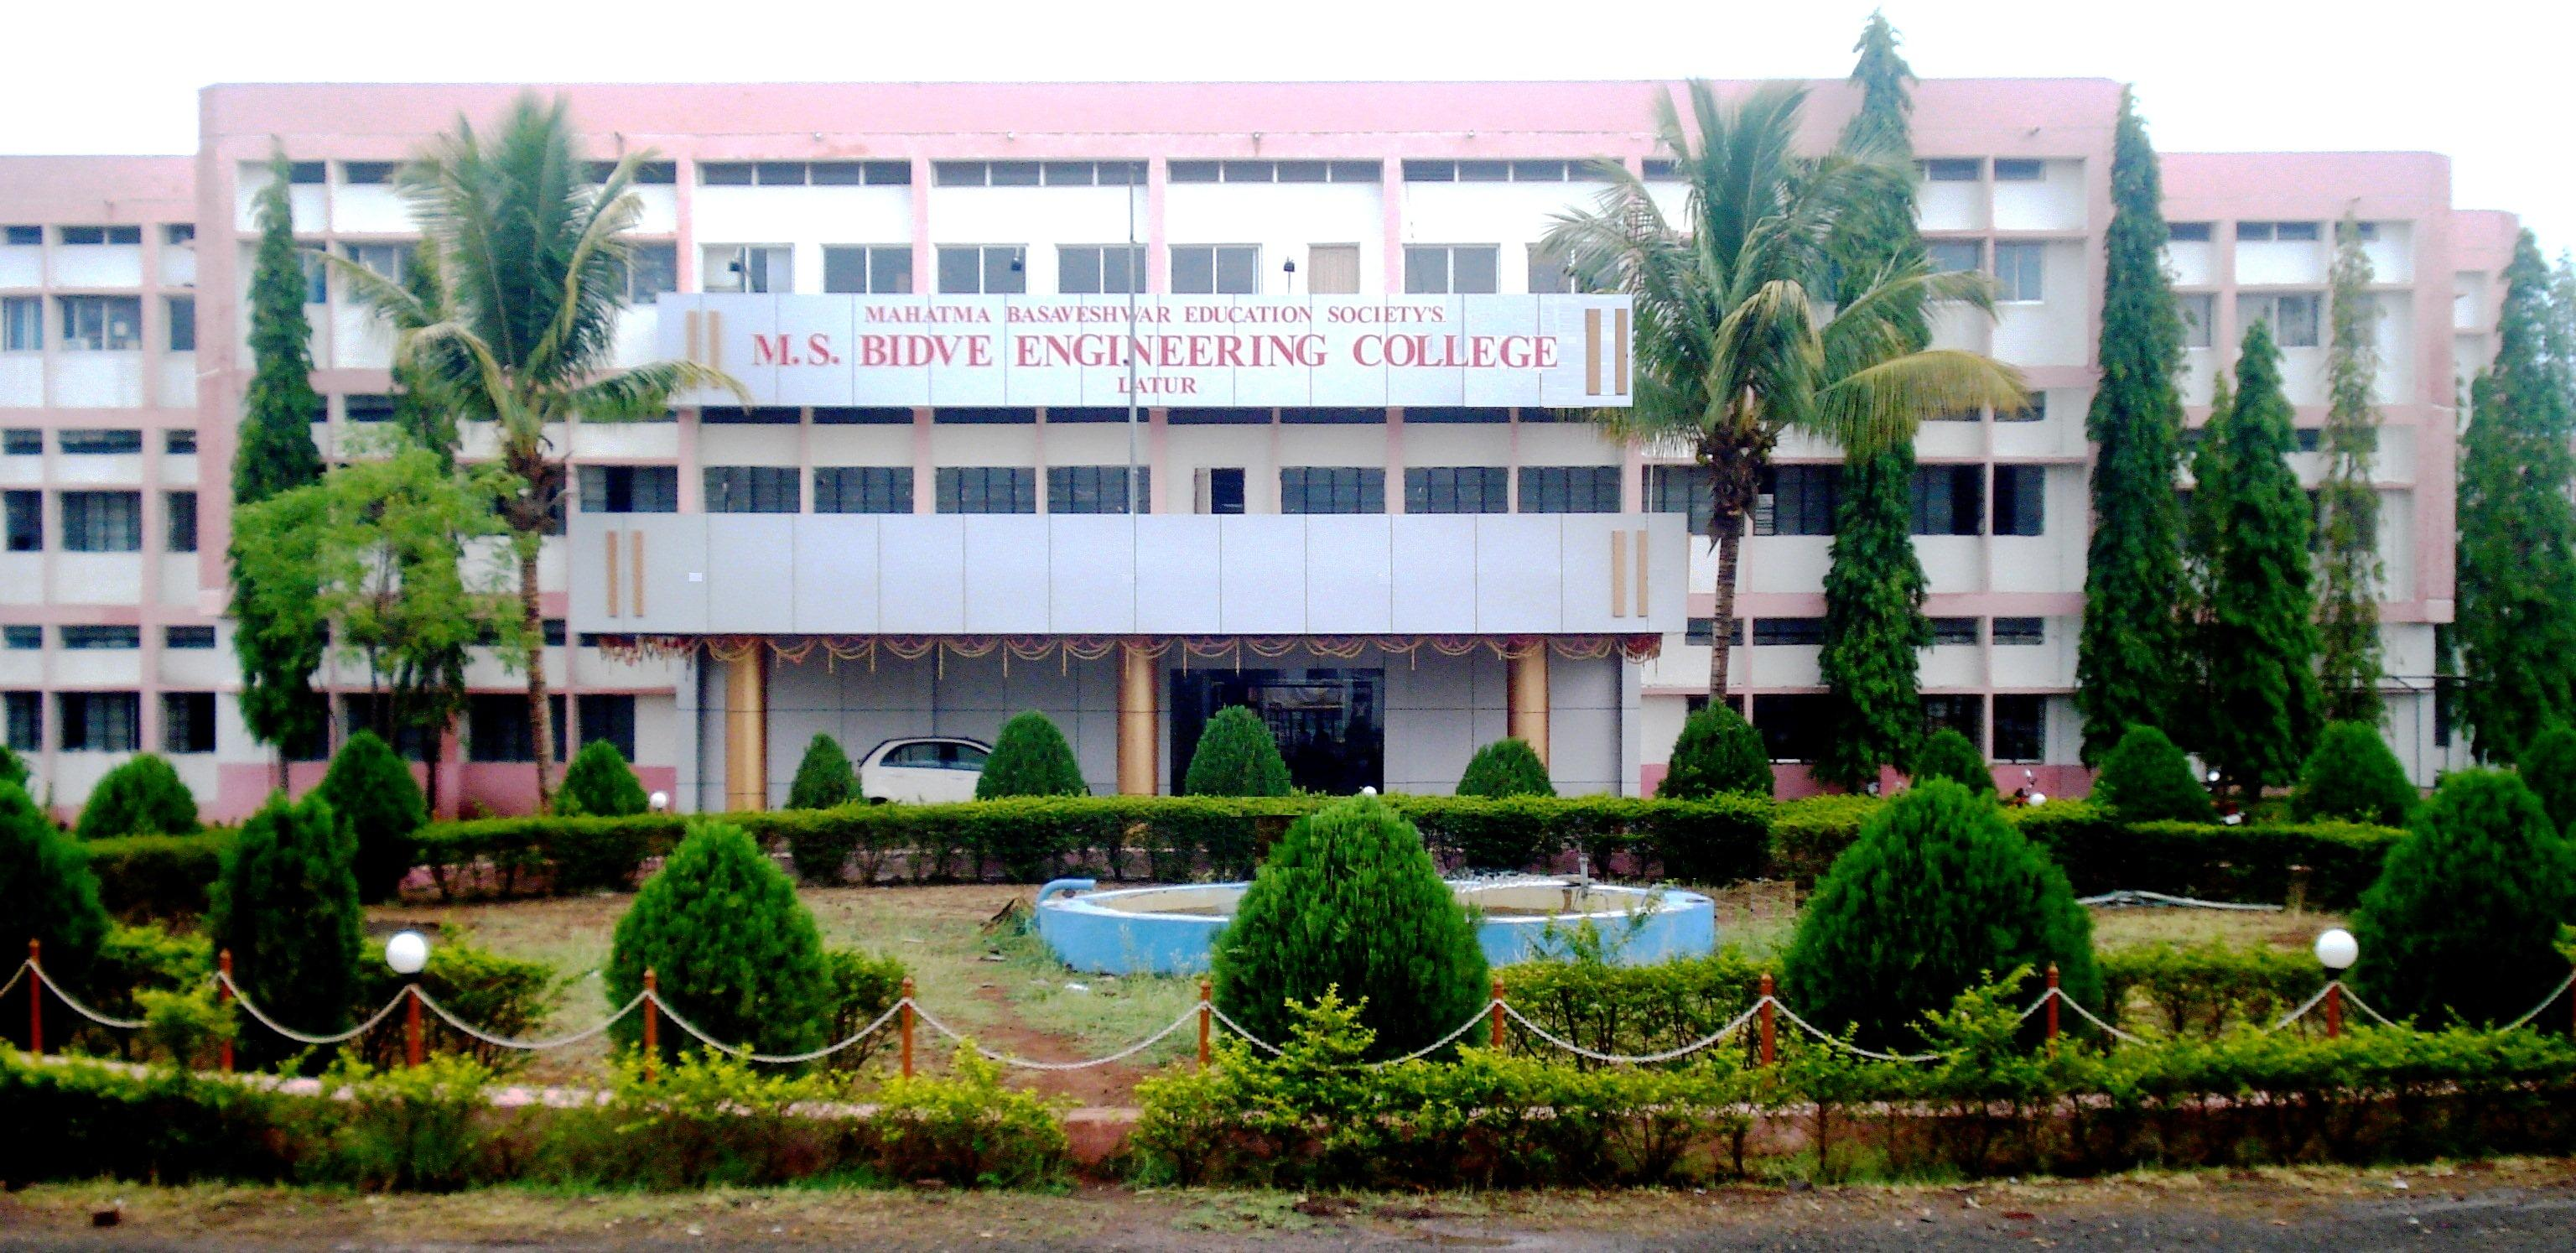 M S Bidve Engineering College Latur Photos Images Wallpaper Campus Photos Hostel Canteen Photos Hd Images Photo Gallery Mouthshut Com